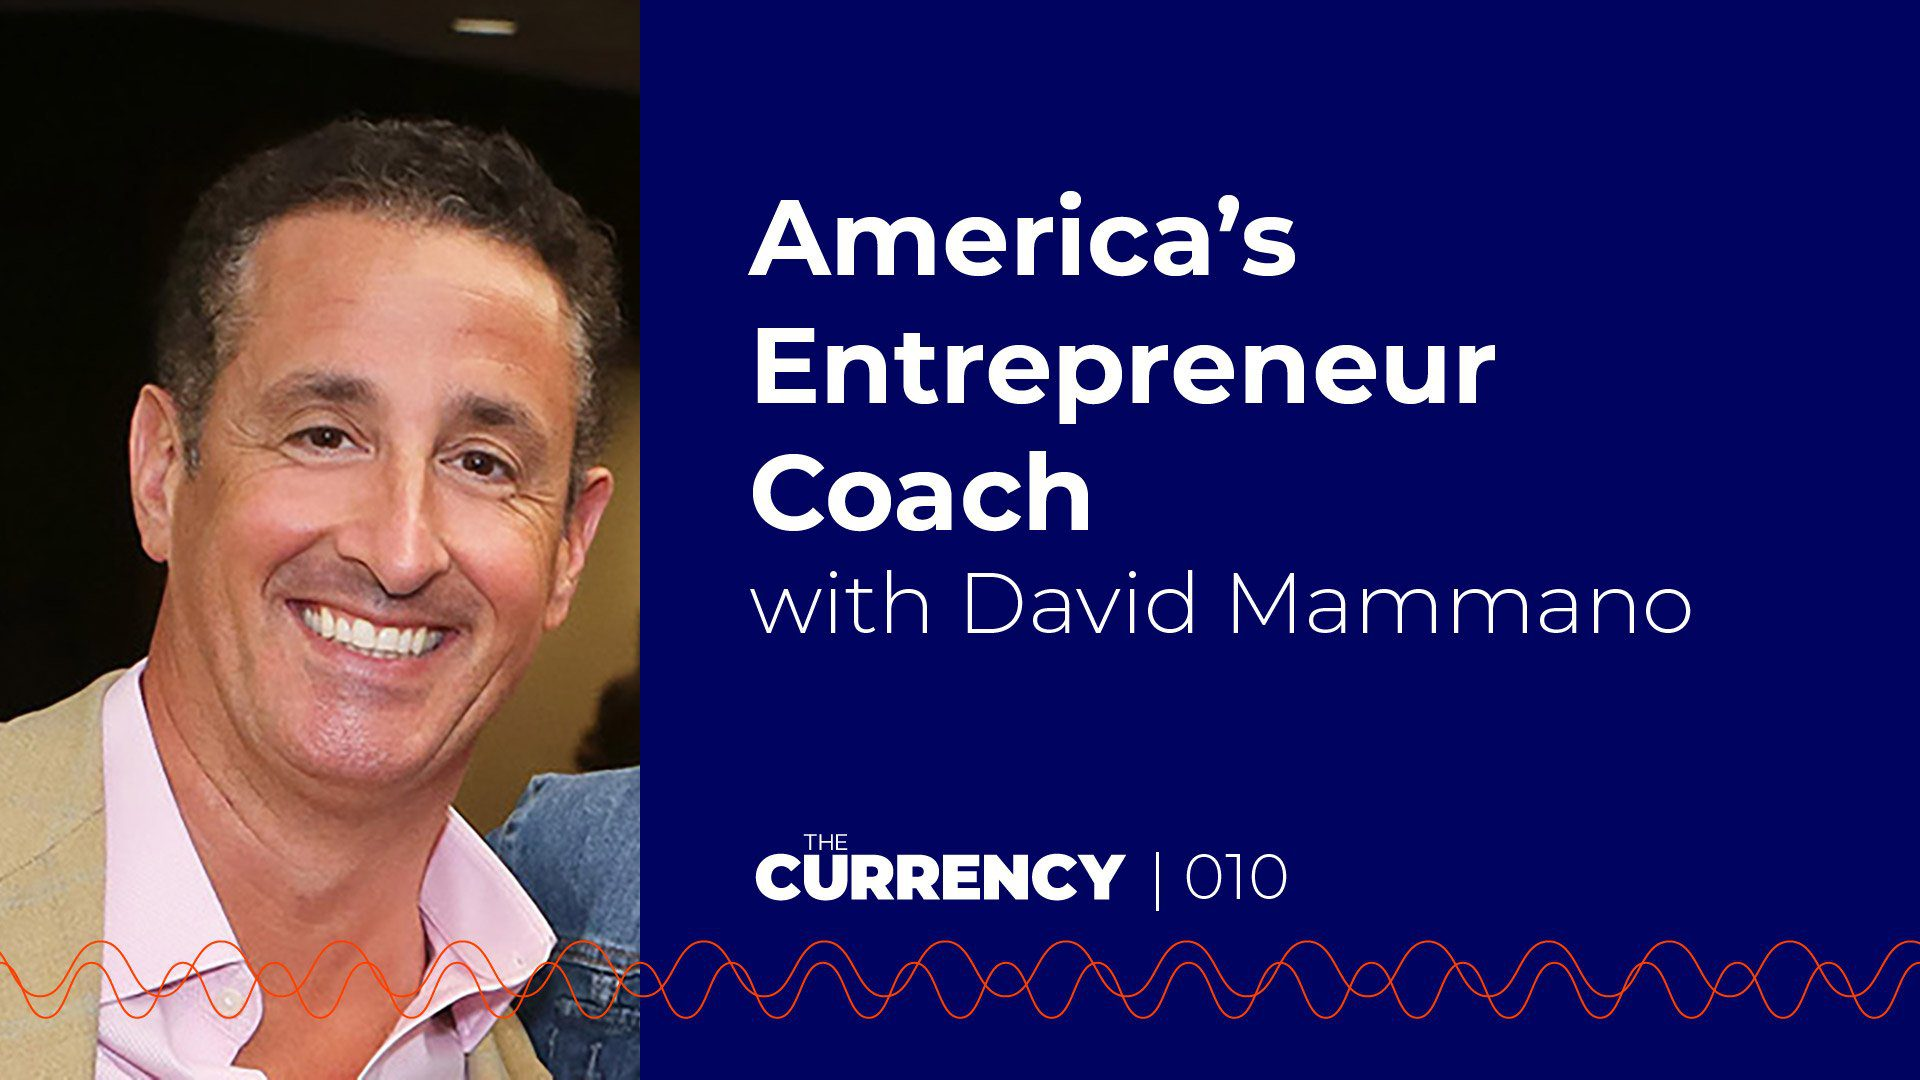 The Currency: [010] America's Entrepreneur Coach with David Mammano